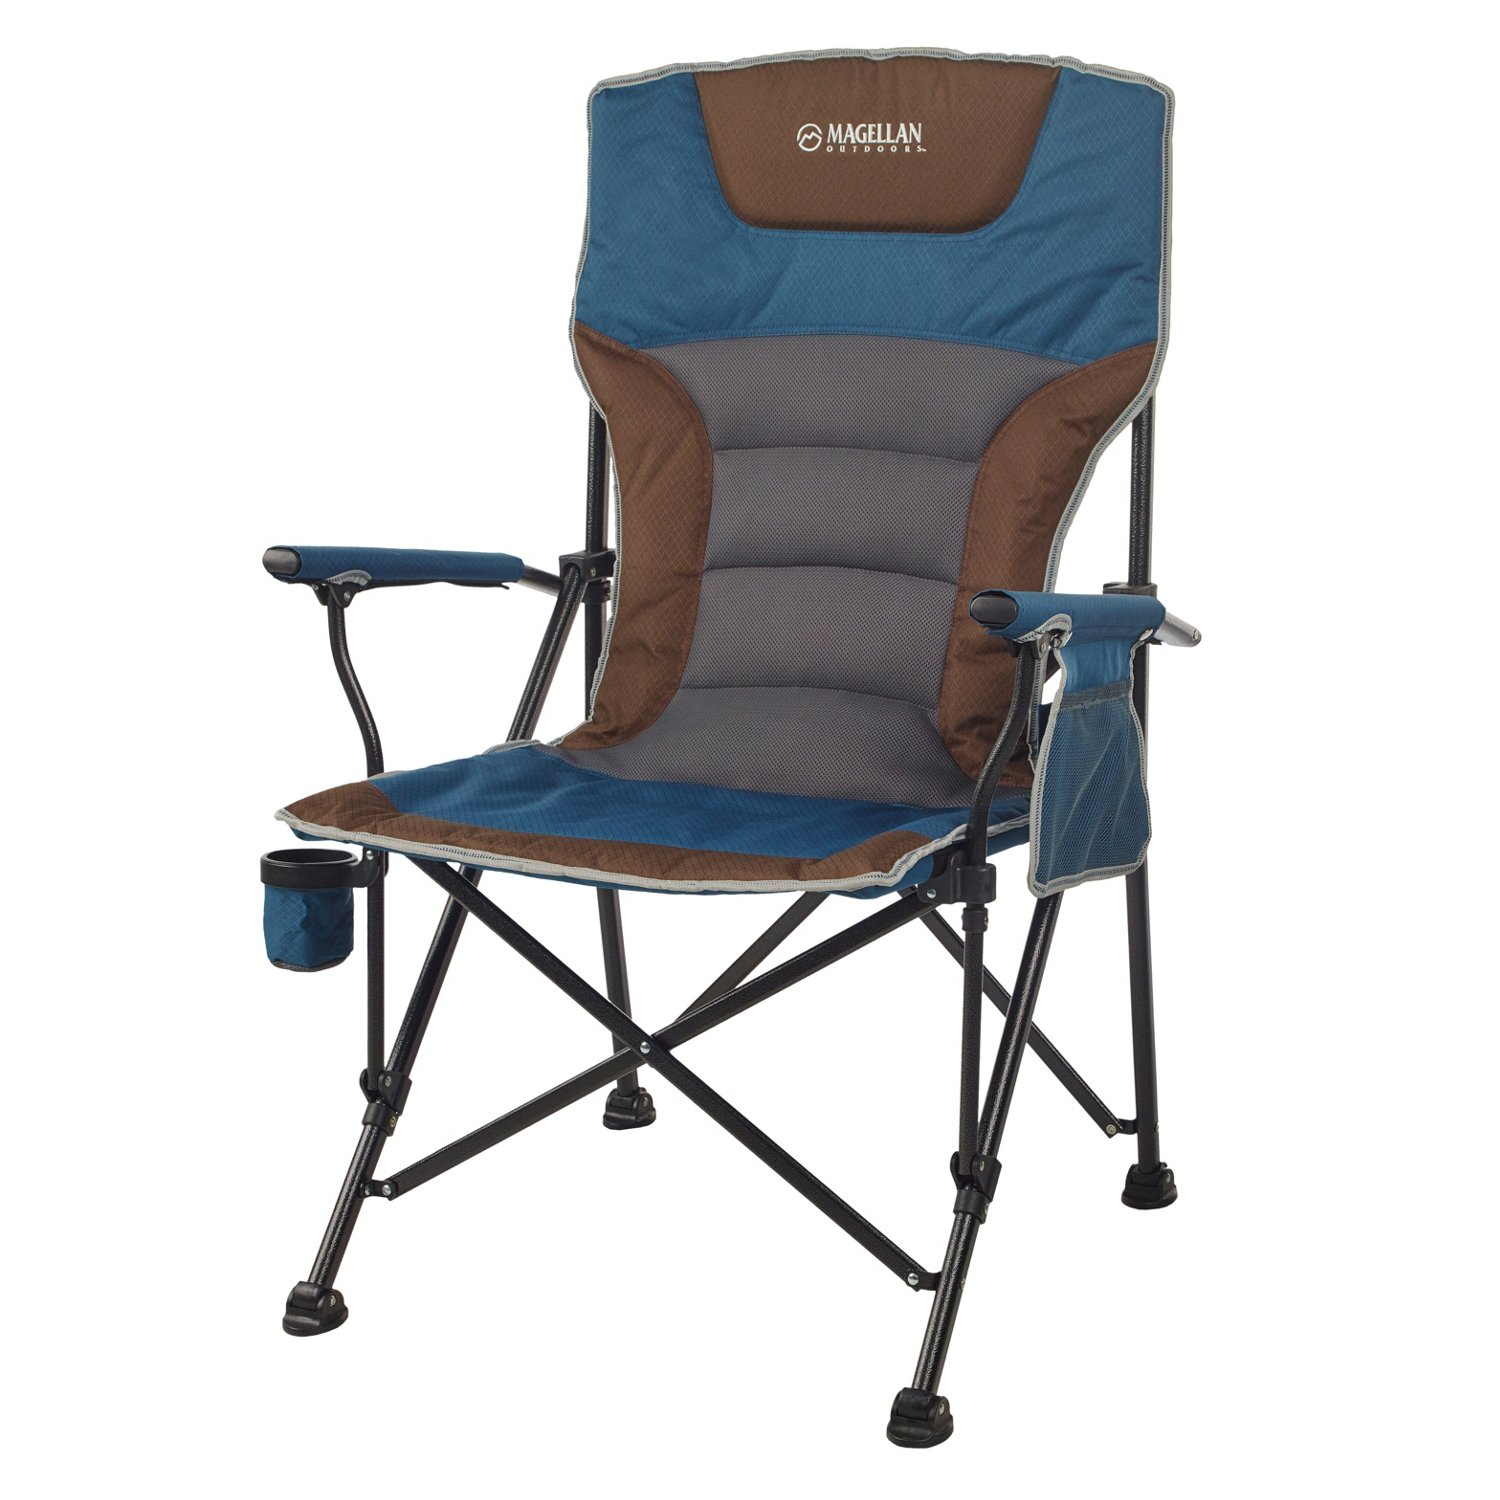 Charmant Magellan Redwoods High Back Hard Arm Chair   View Number 1 ...